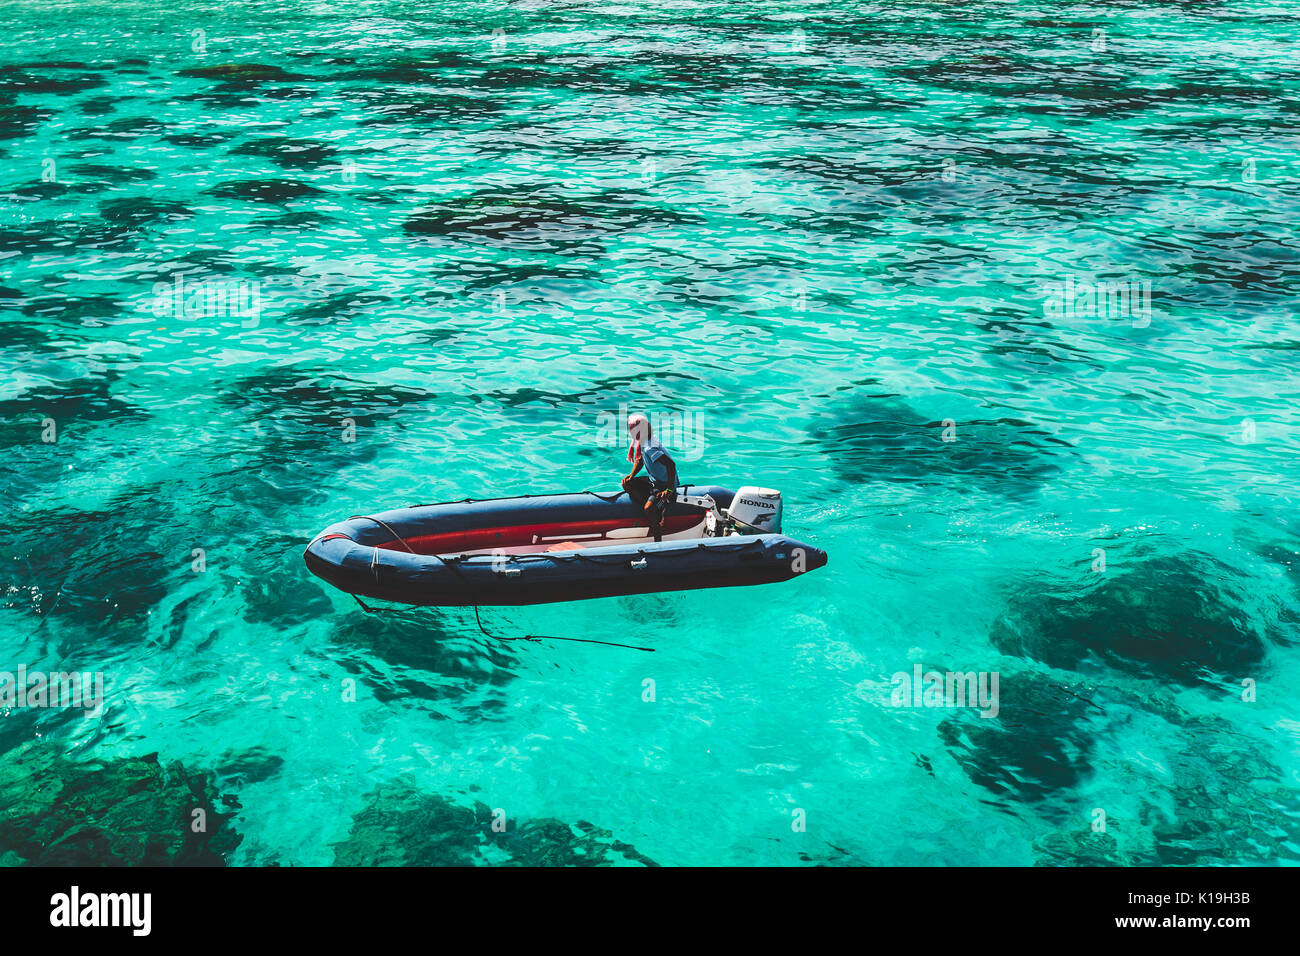 SIMILAN, THAILAND- JANUARY 31, 2014: Inflatable boat floats on surface of the pure clear water at bay of tropical - Stock Image